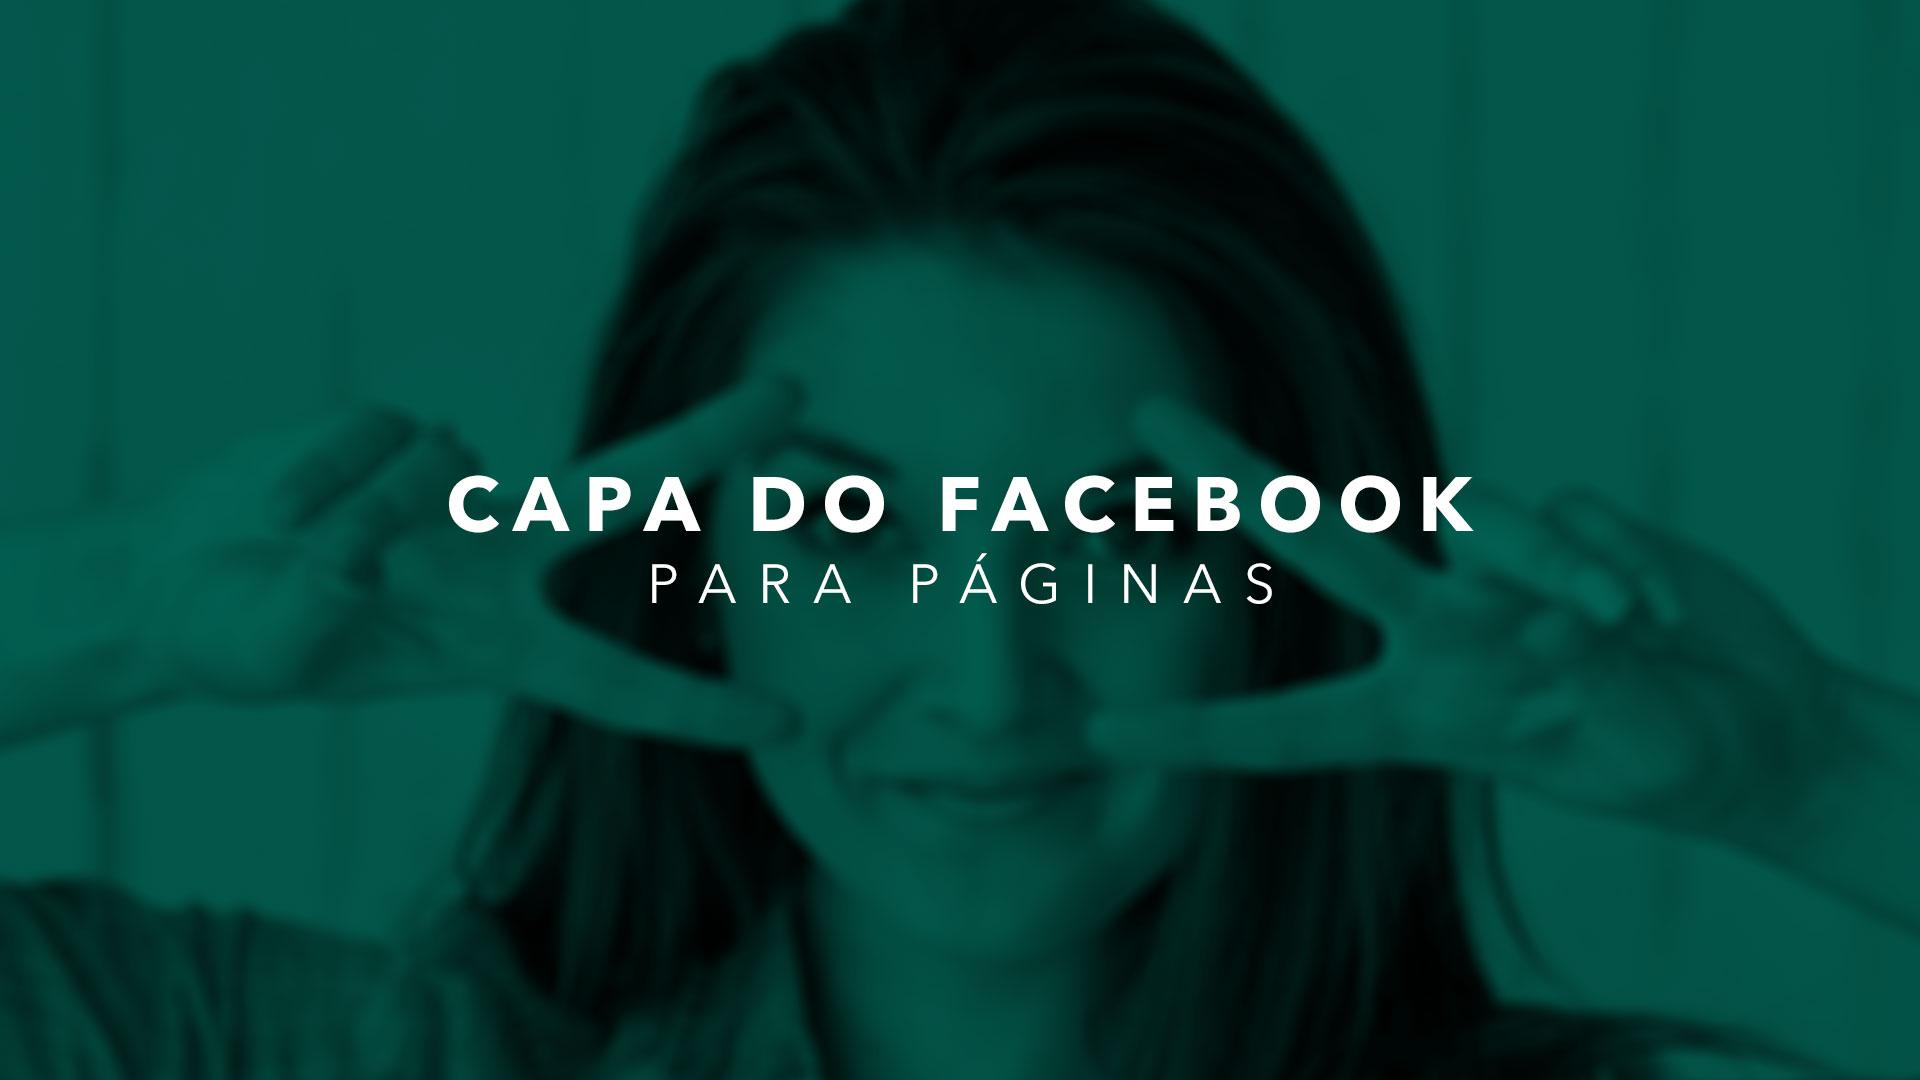 Capa Do Facebook Para Fanpages Poster 879272 Hd Wallpaper